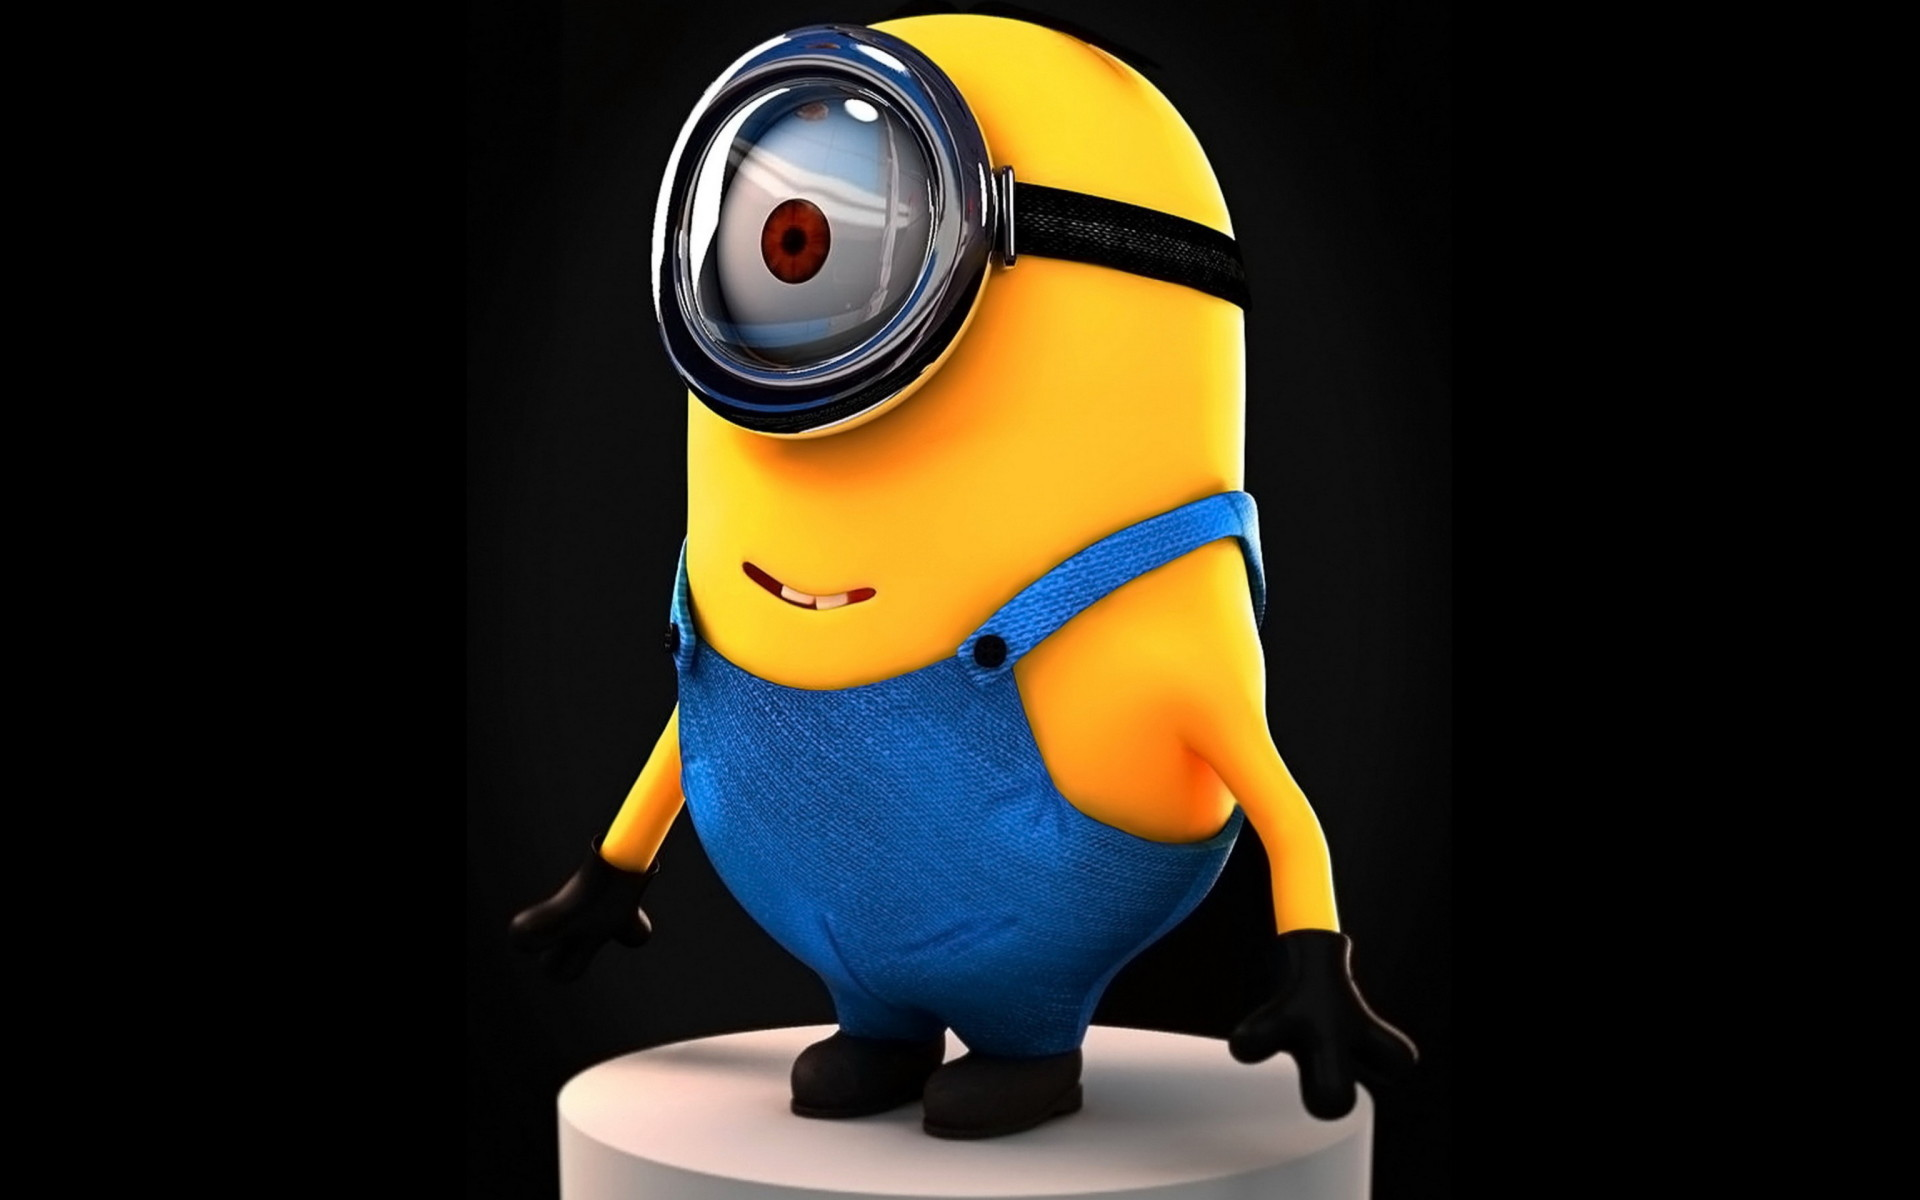 Minions Die offizielle Webseite Ab 12 November 2015. Download minion 3d  live wallpaper für android Softonic